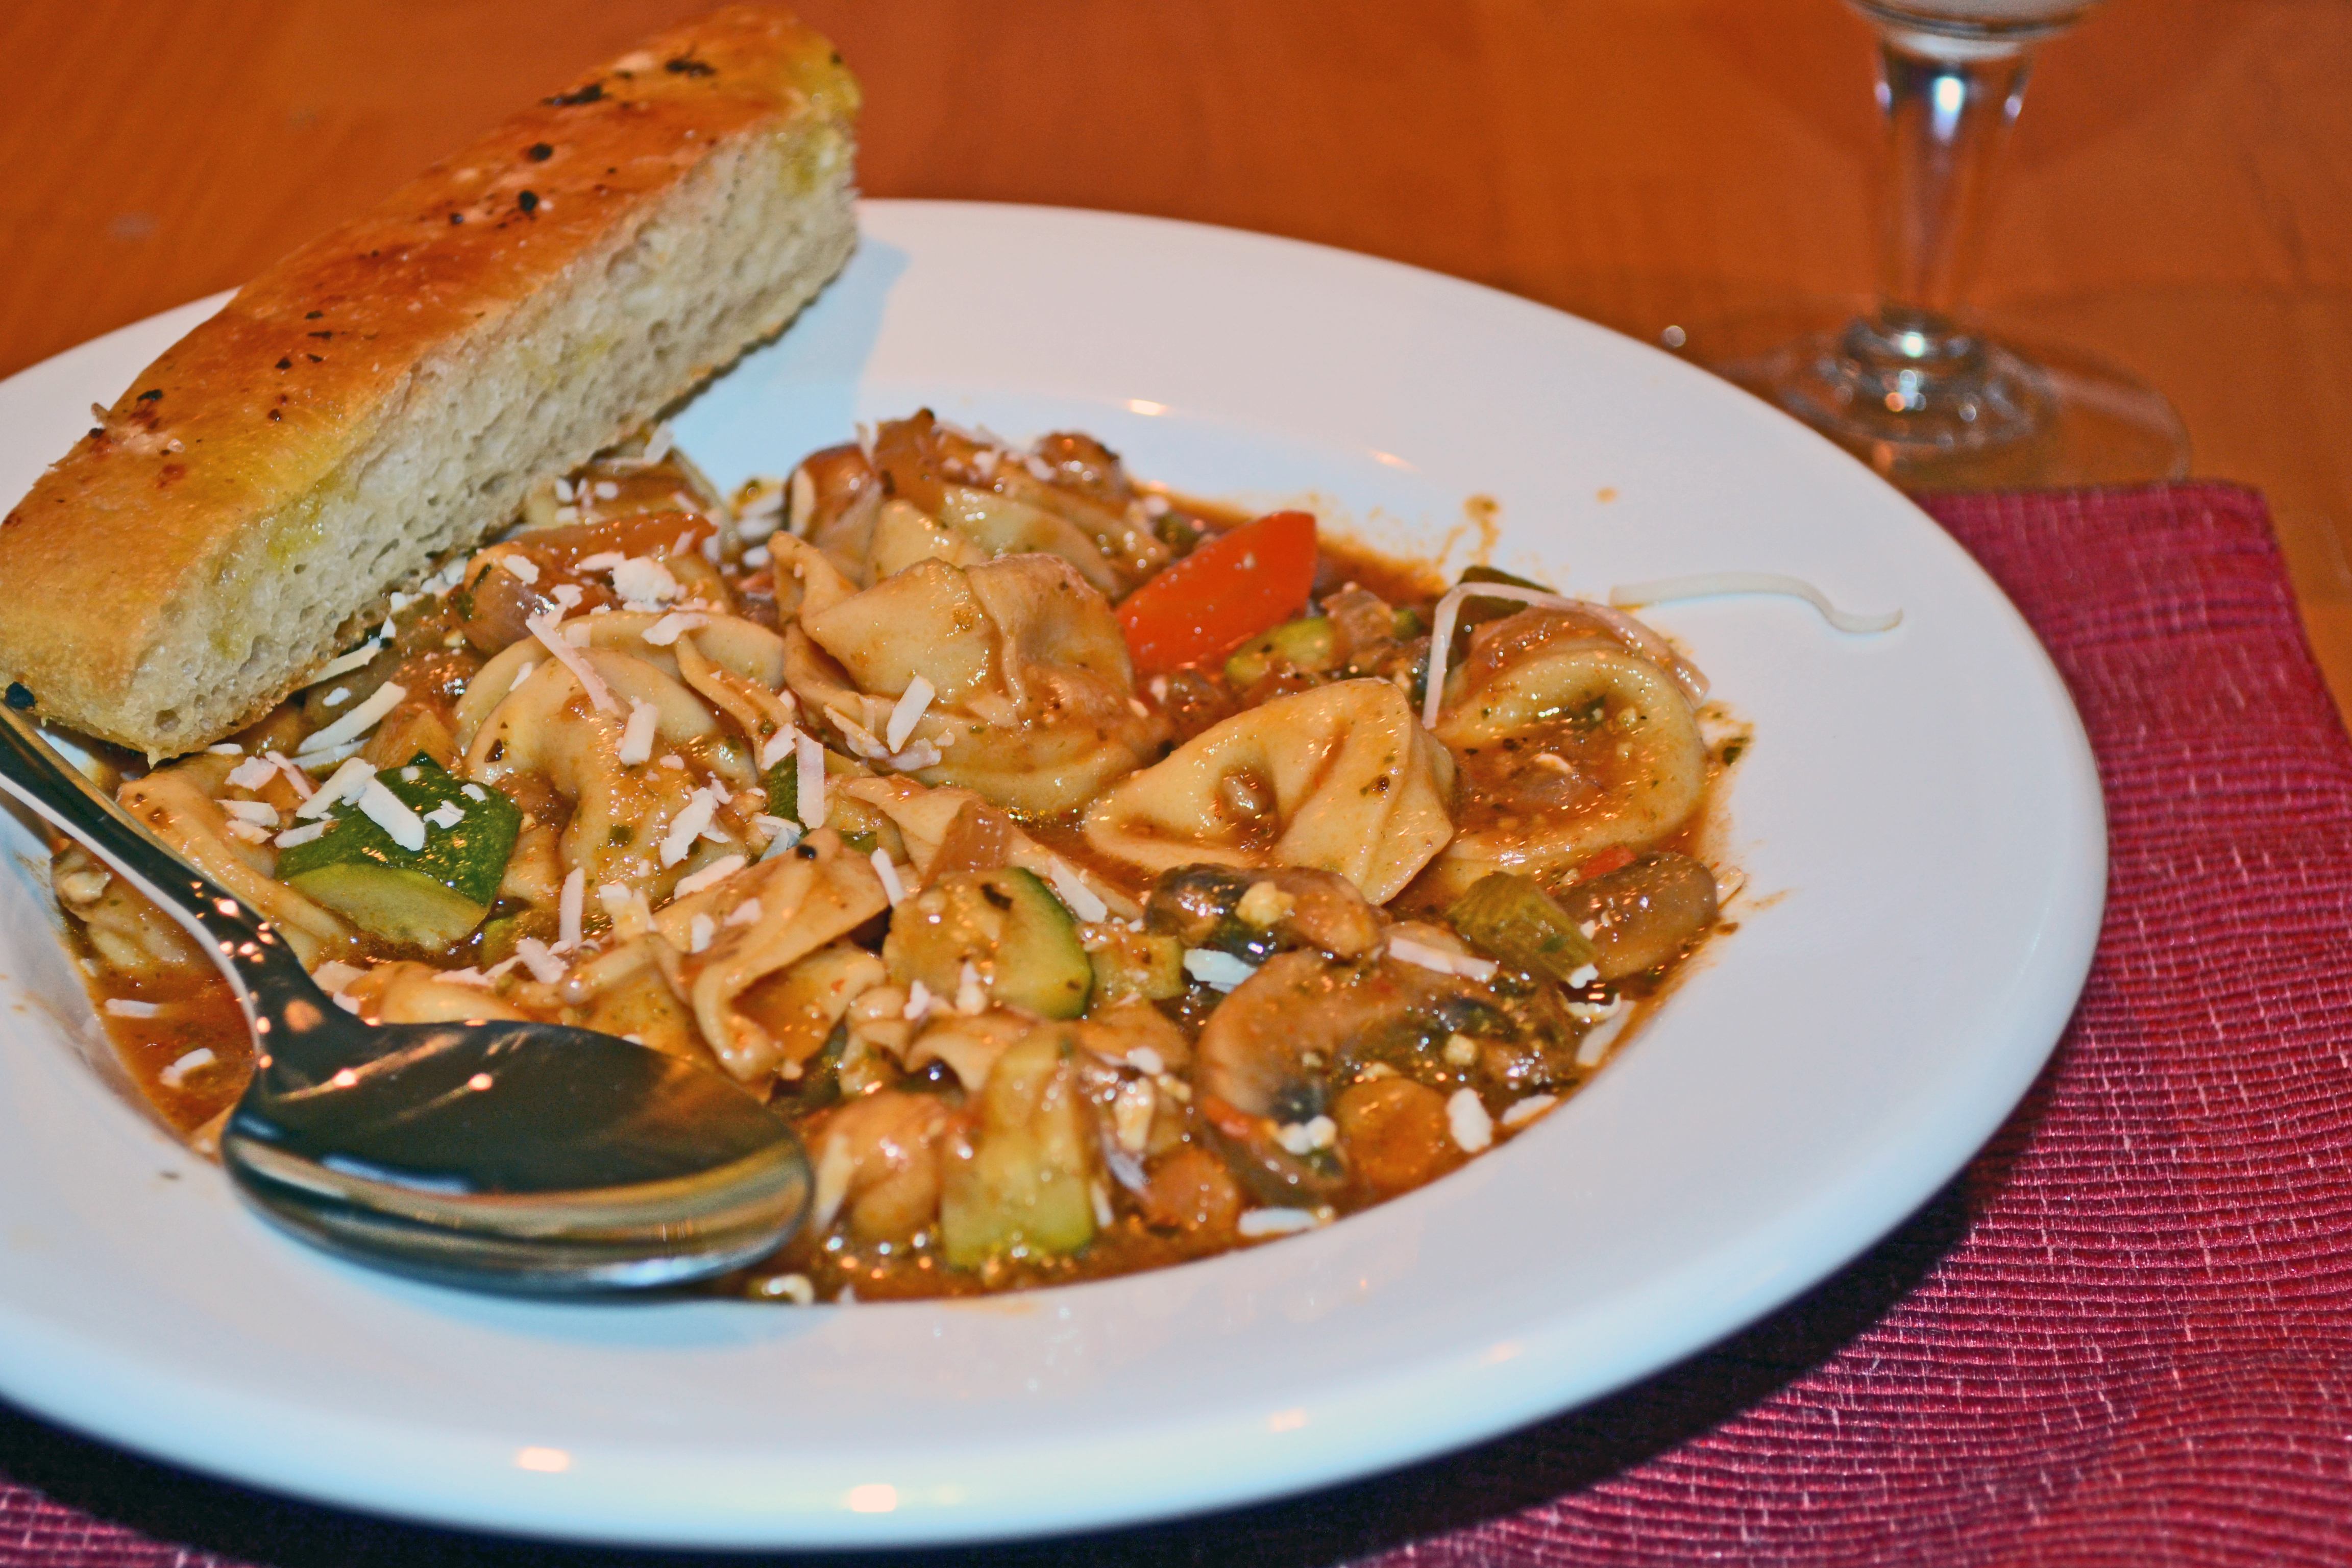 Minestrone with Tortellini and Pesto – baked by nicole